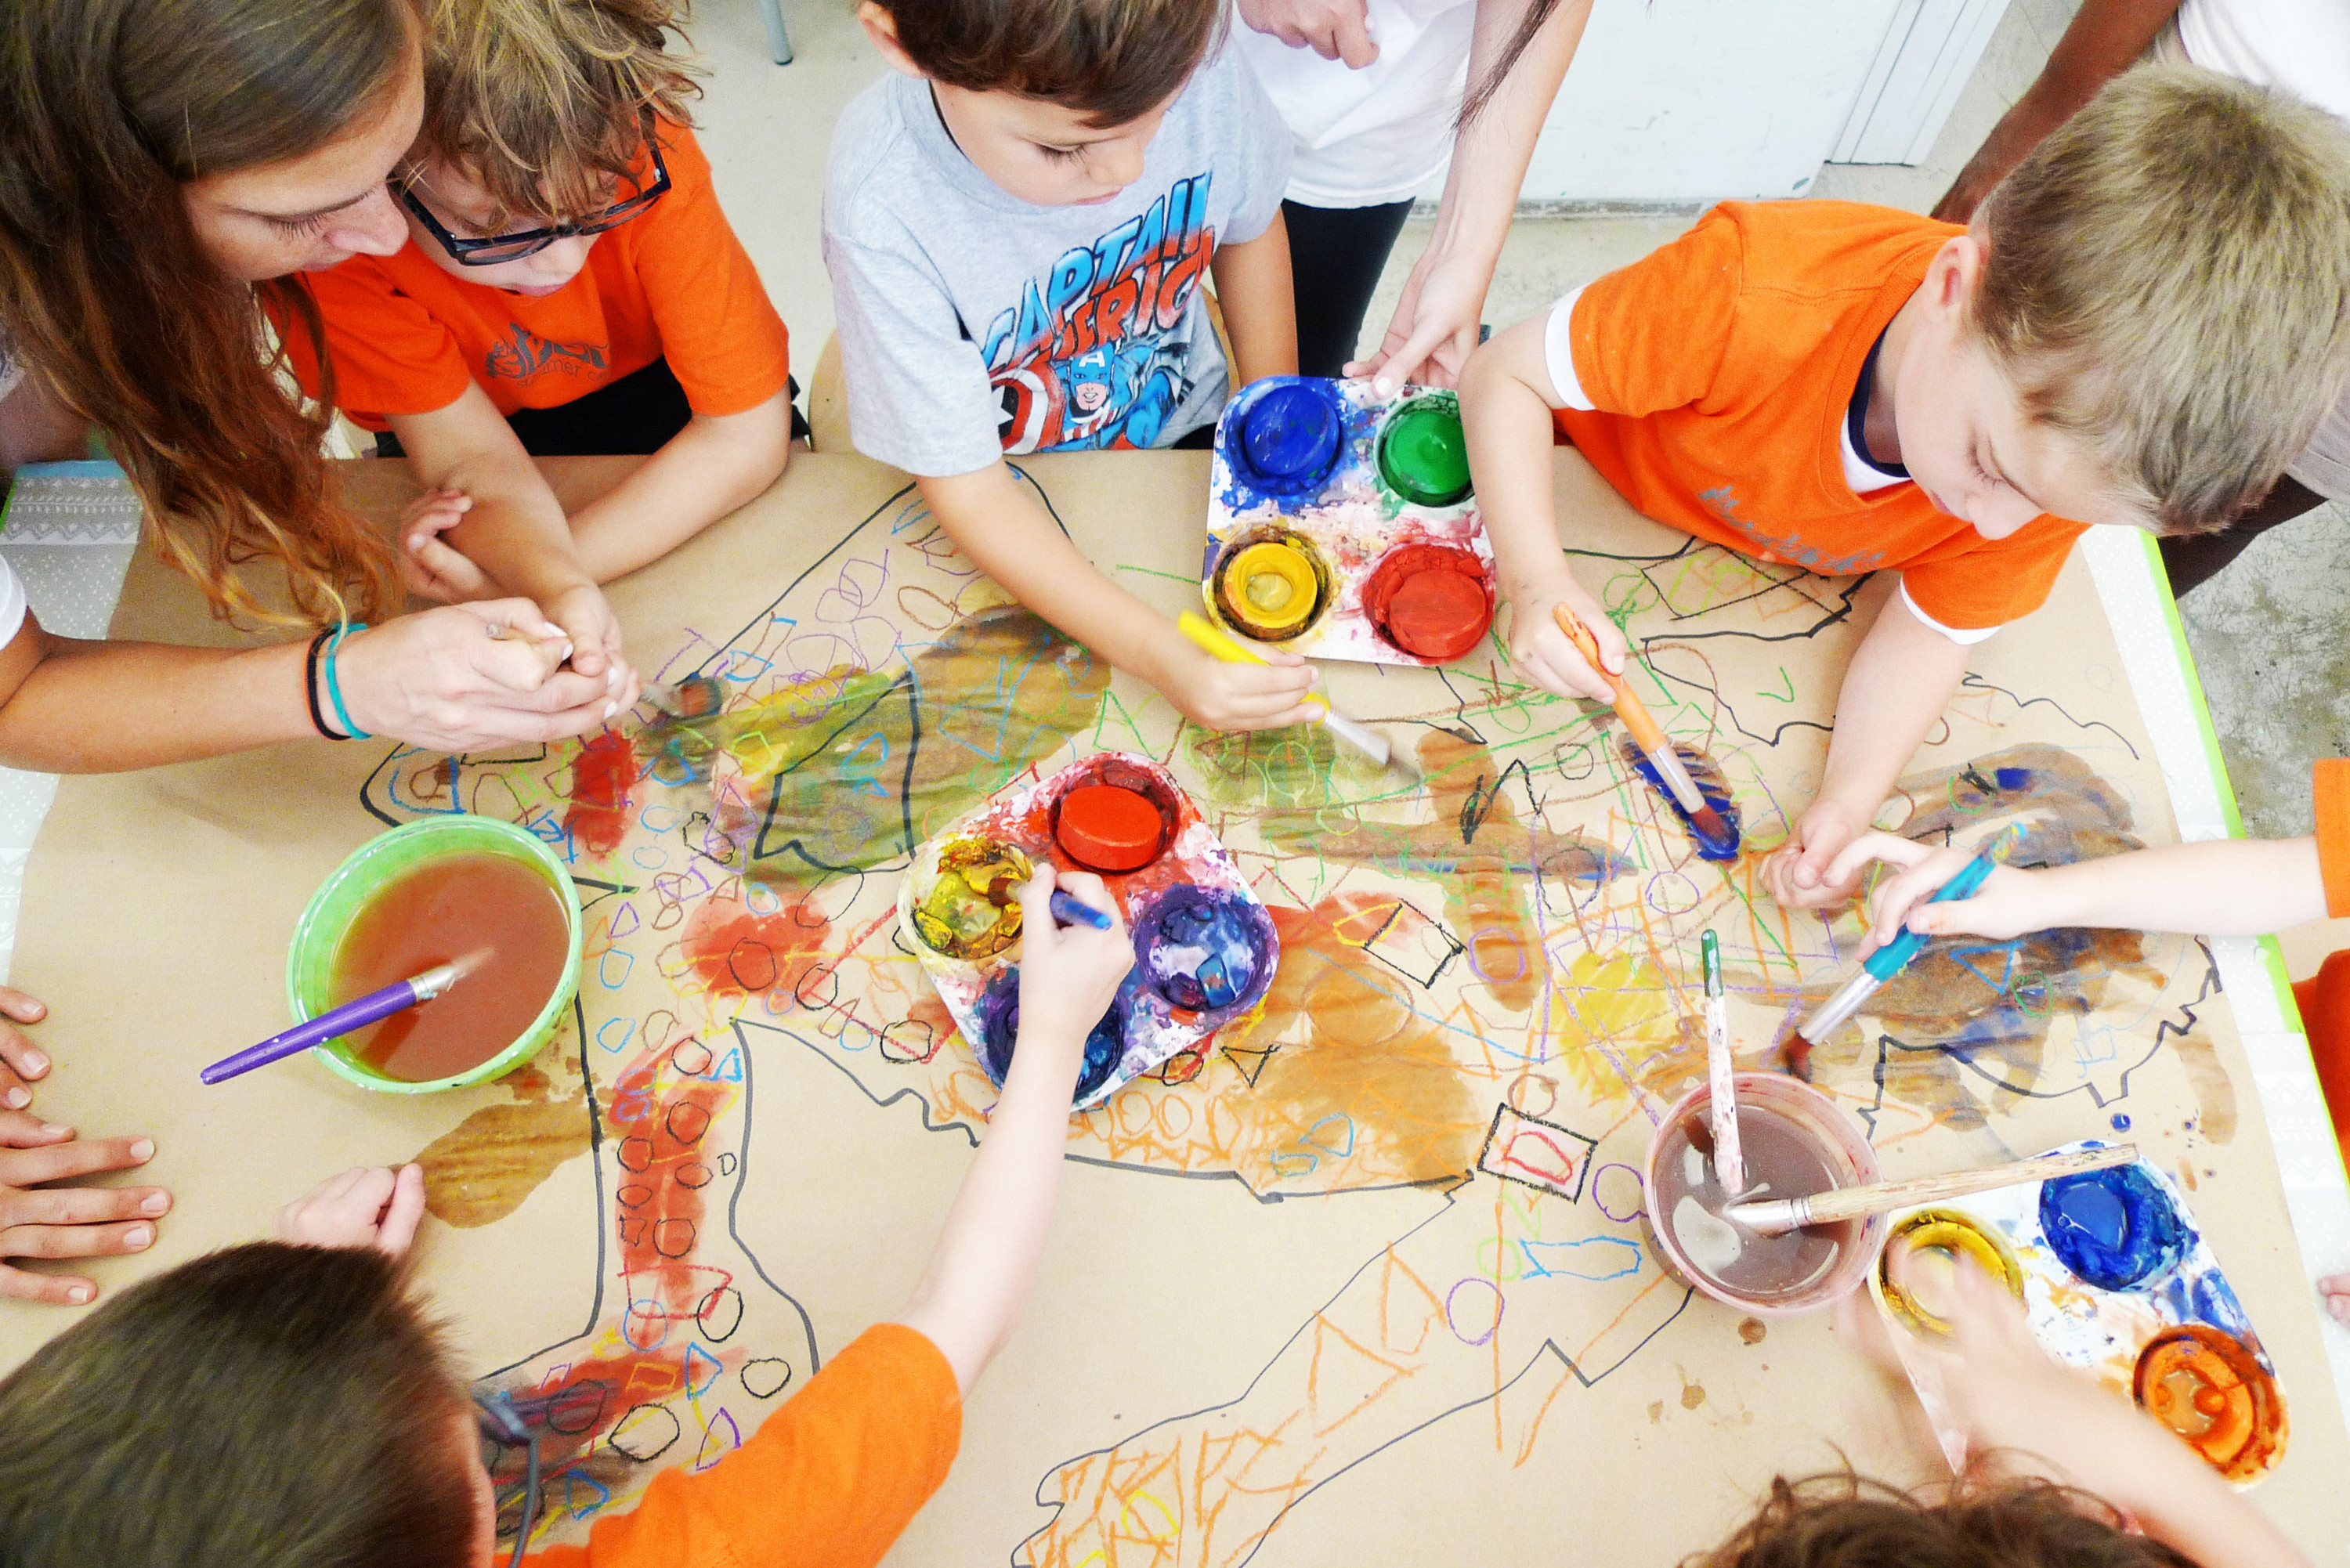 Best ideas about Art With Kids . Save or Pin The best children s museum picks for kids in New York City Now.